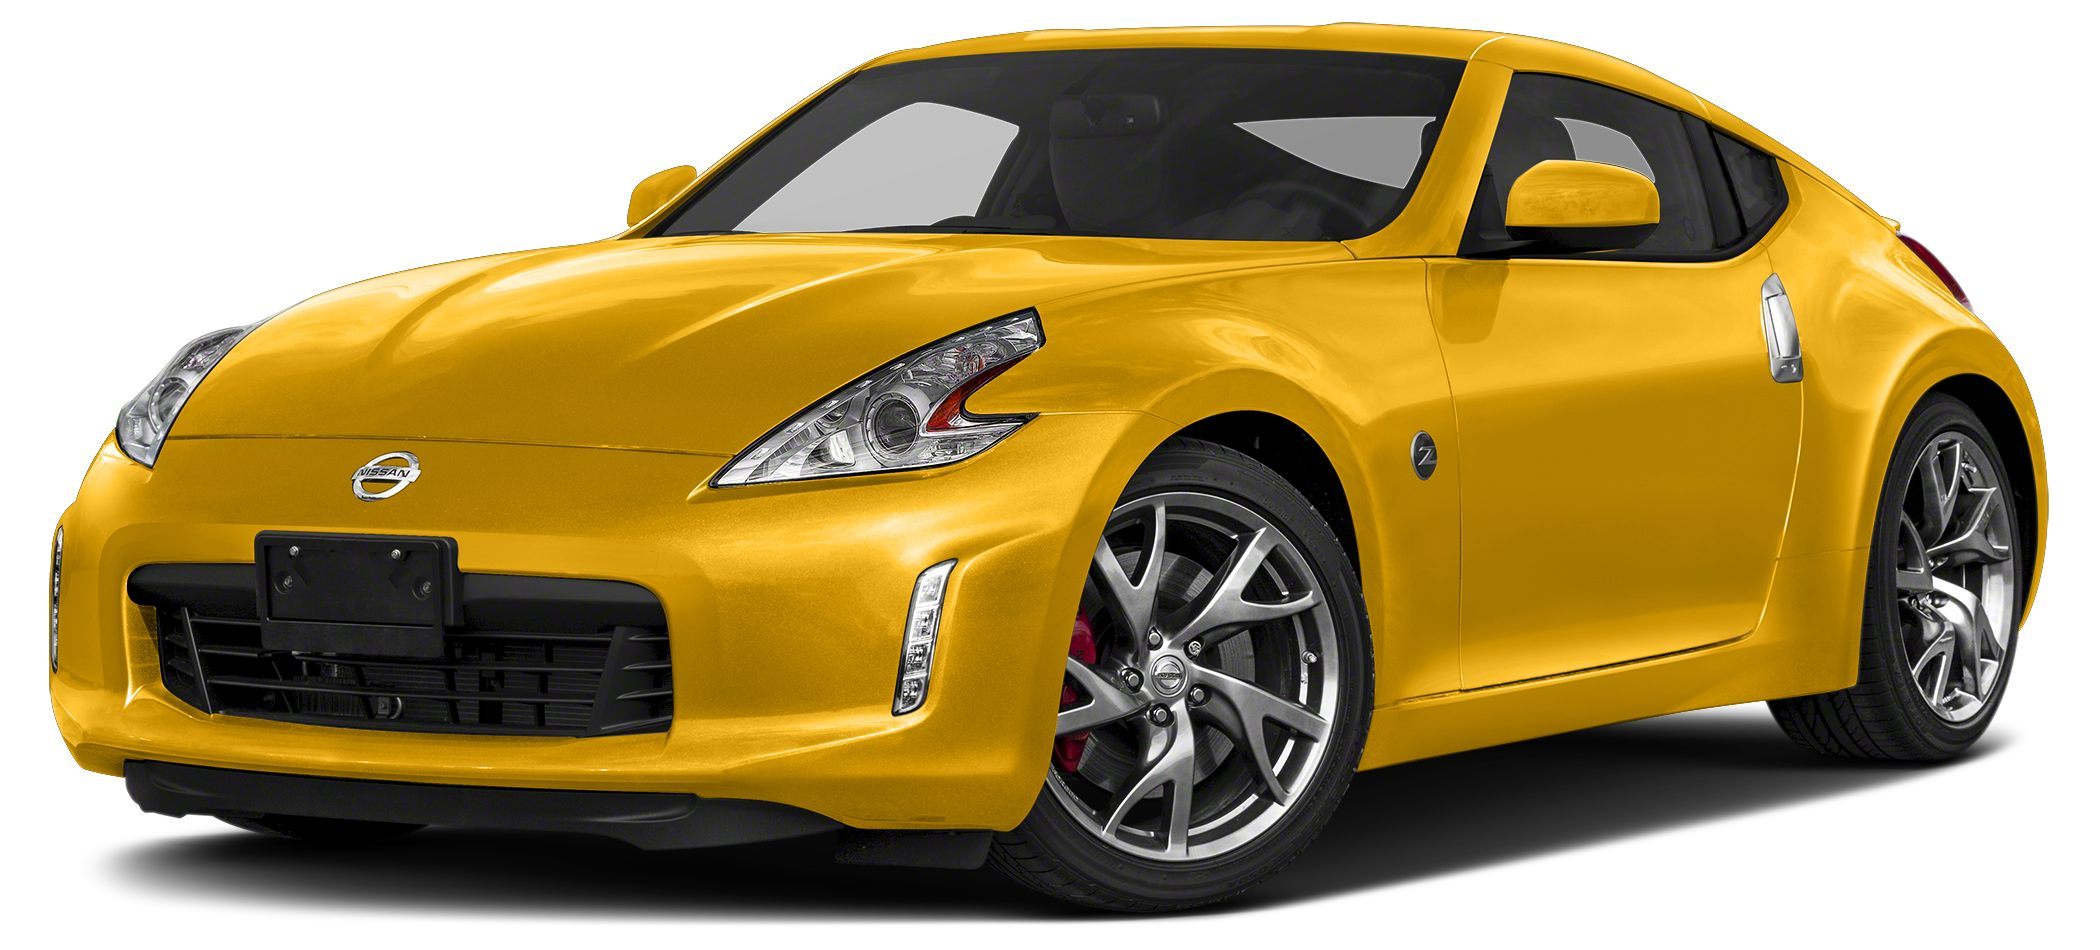 2017 Nissan 370Z Base This 2017 Nissan 370Z Bluetooth Please let us help you with Finding the i